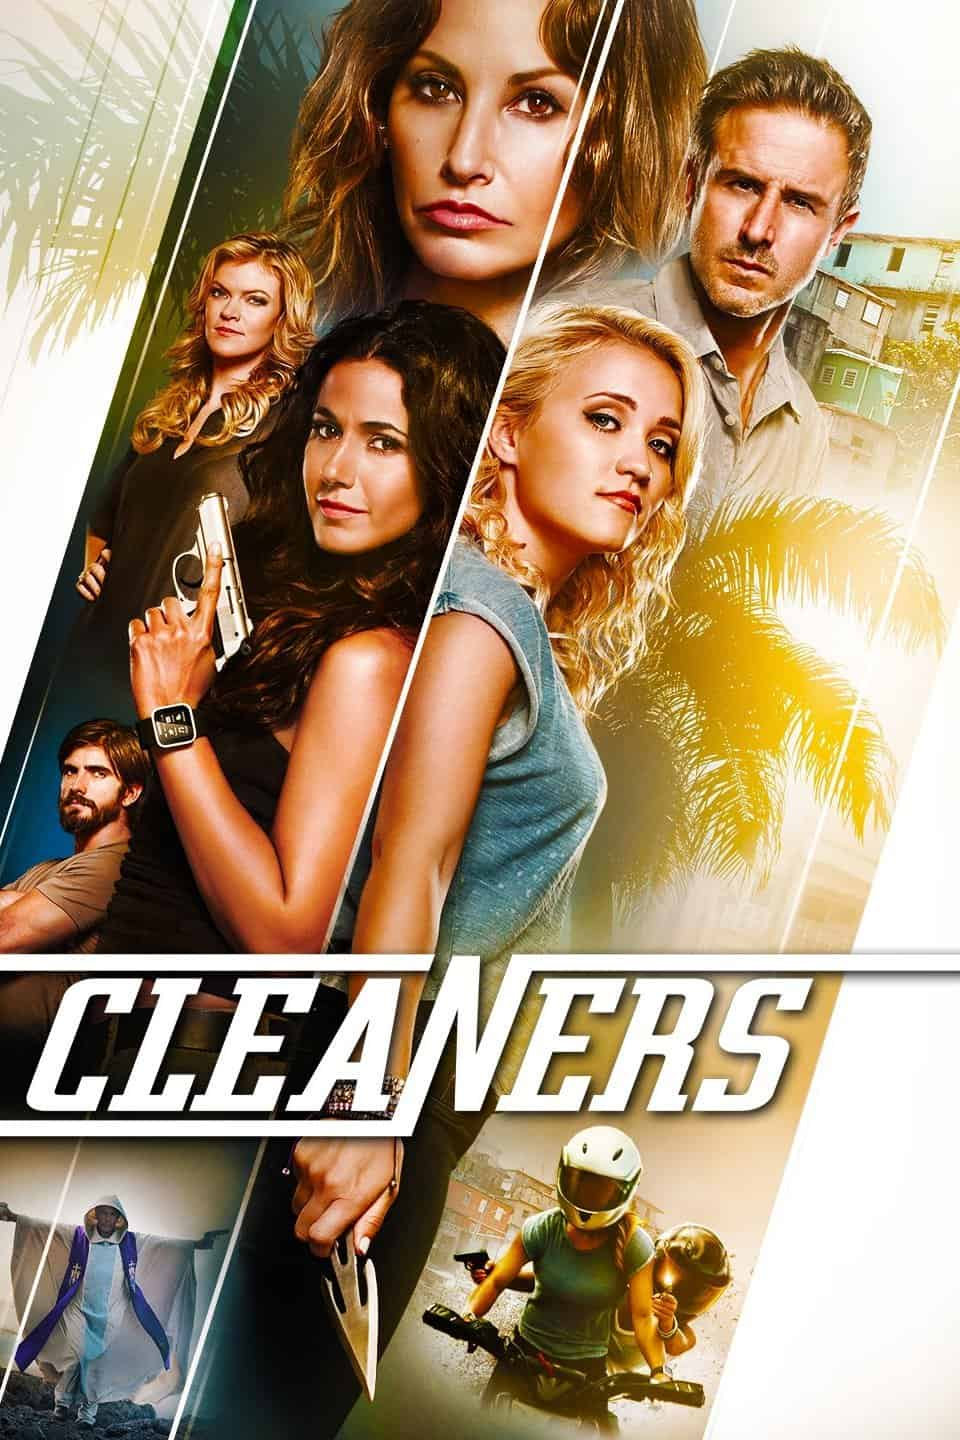 Cleaners, 2013